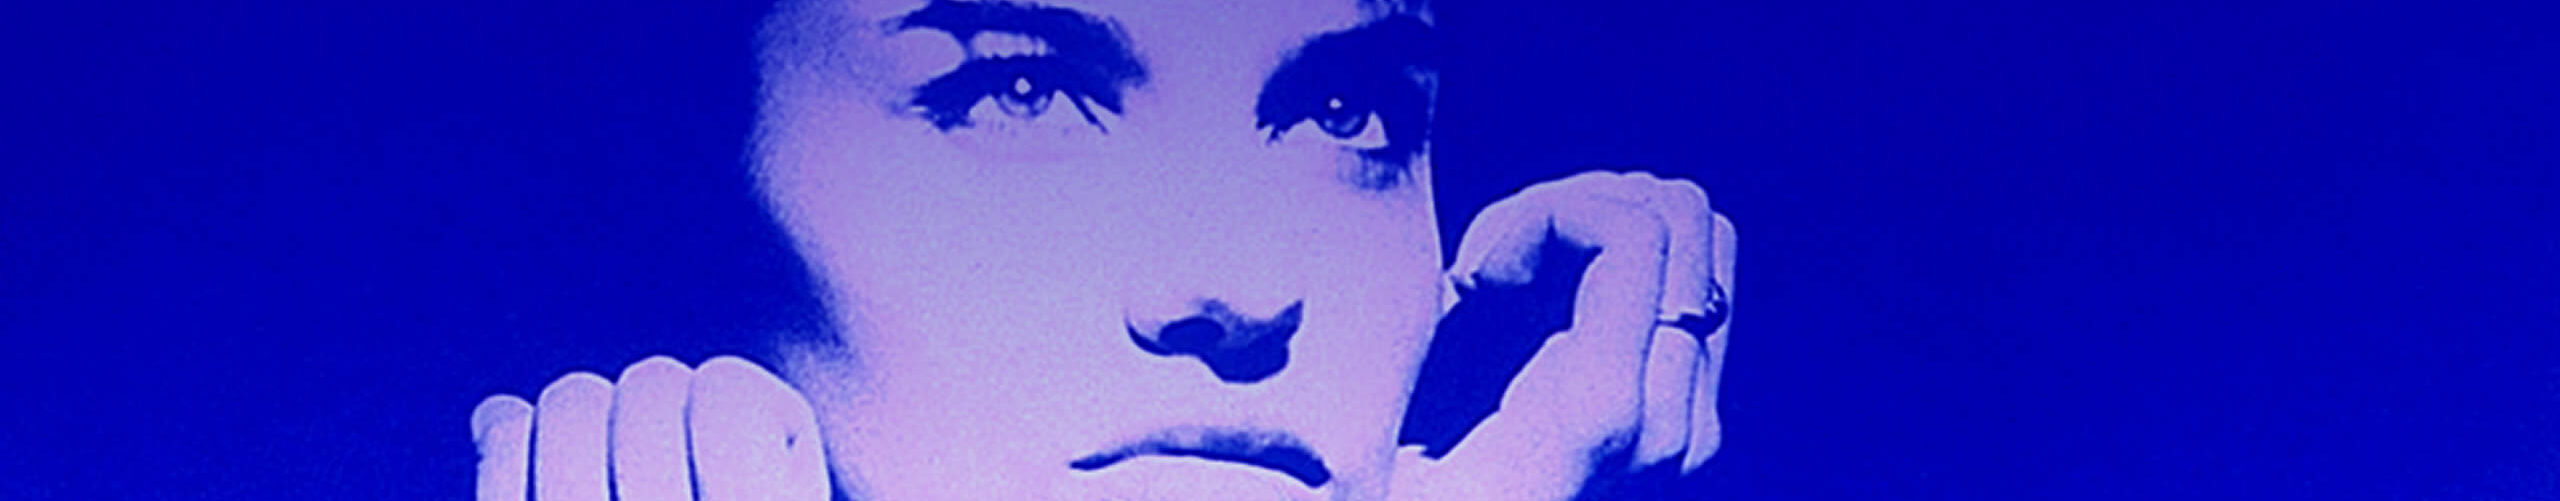 DVDfever.co.uk